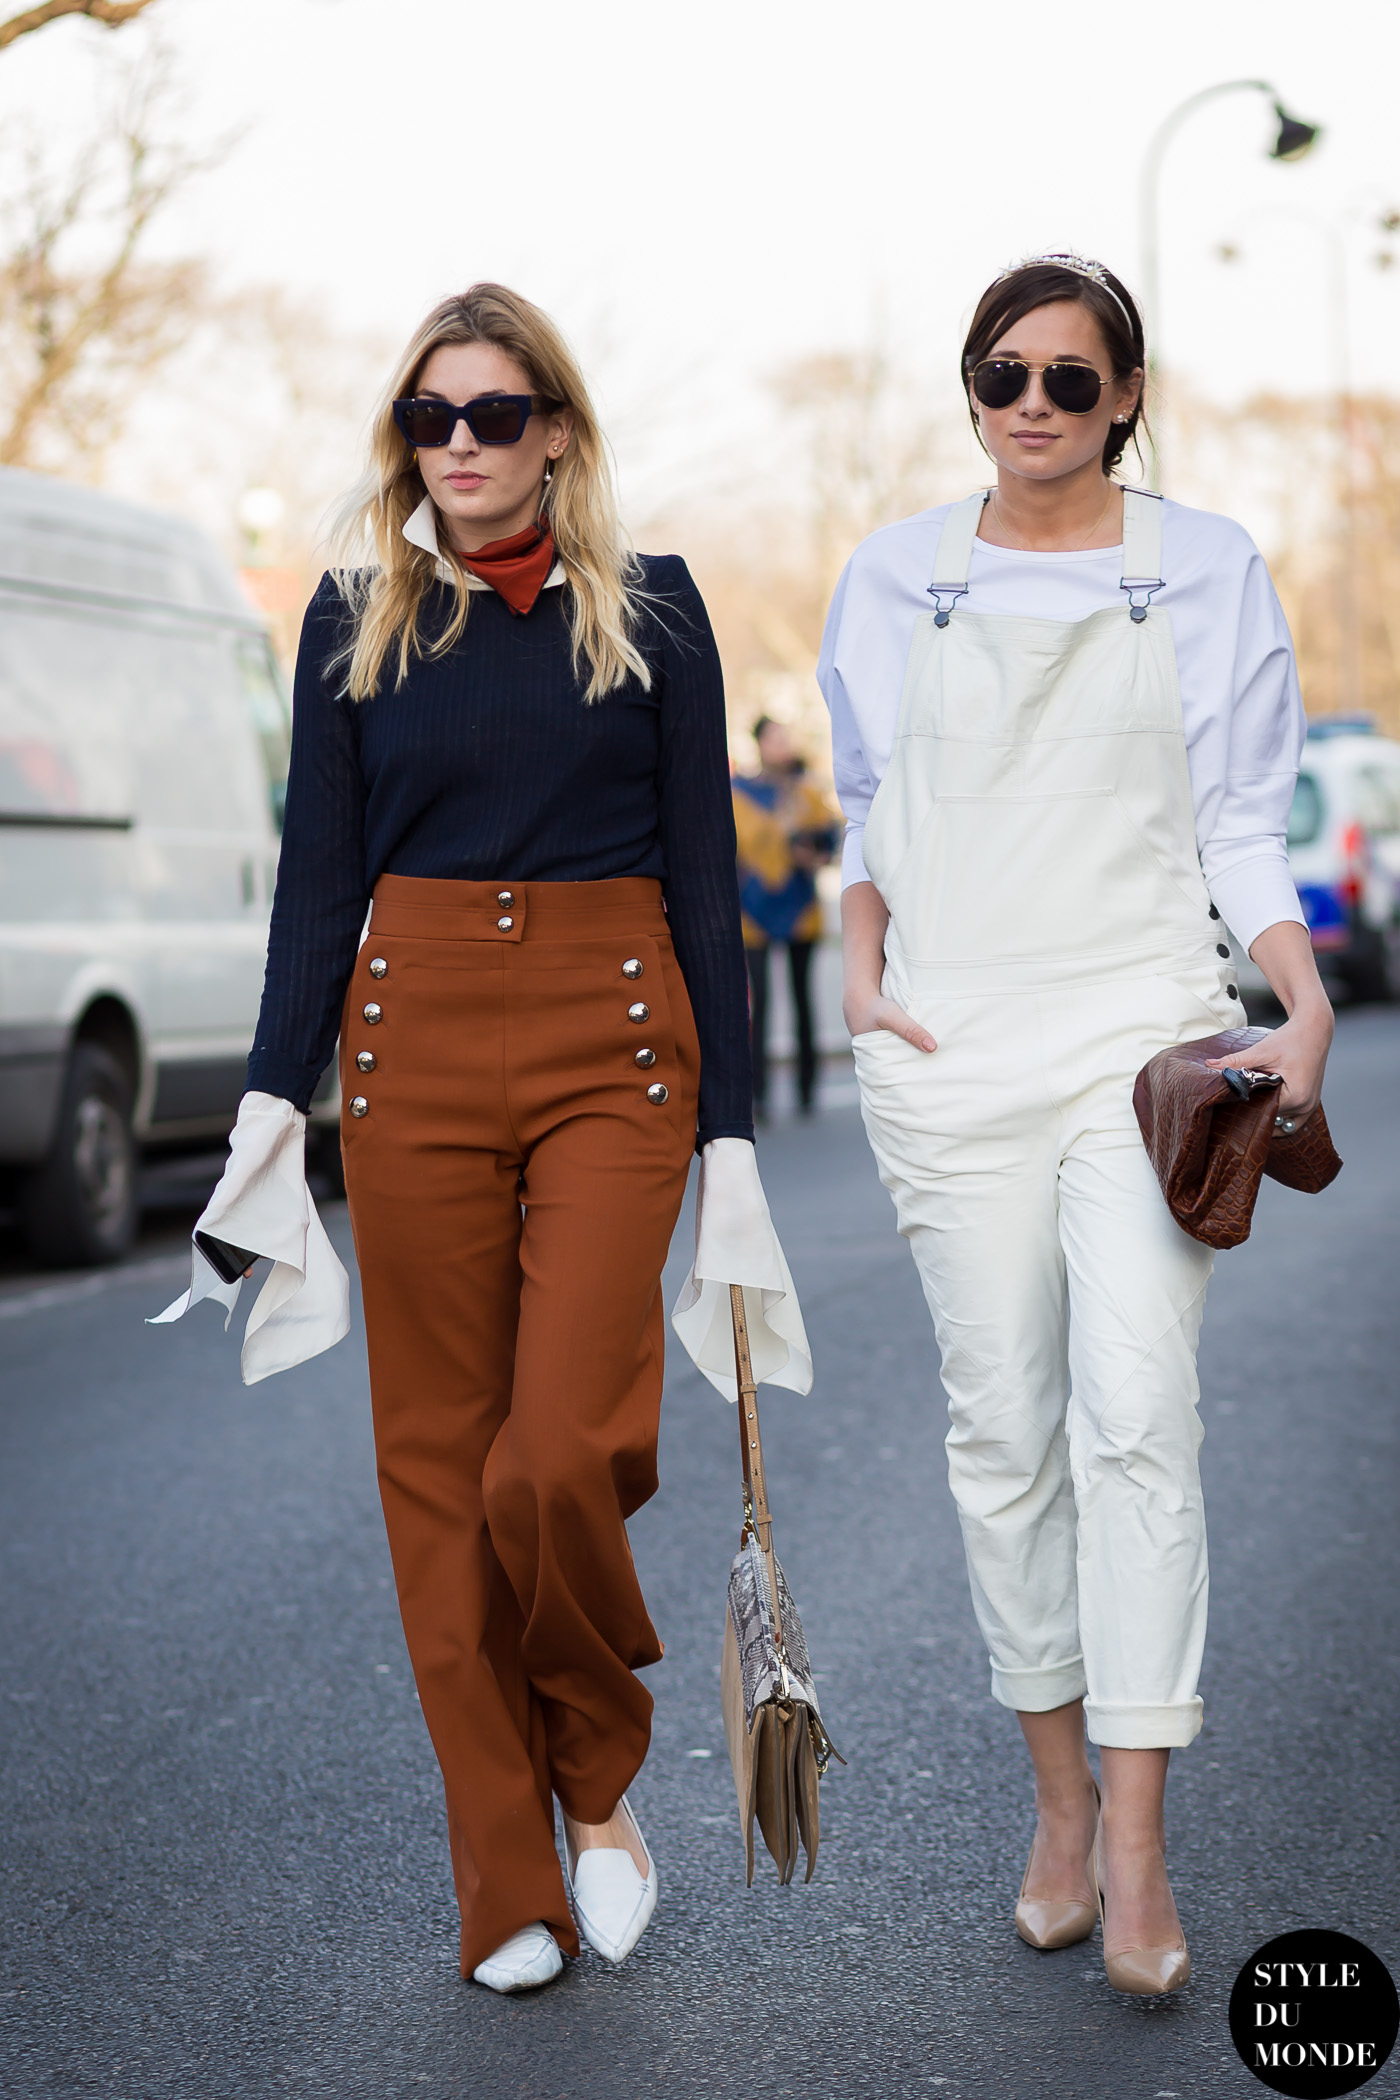 Camille Charrière and Danielle Bernstein Camille Over the Rainbow and WeWoreWhat Street Style Street Fashion Streetsnaps by STYLEDUMONDE Street Style Fashion Blog